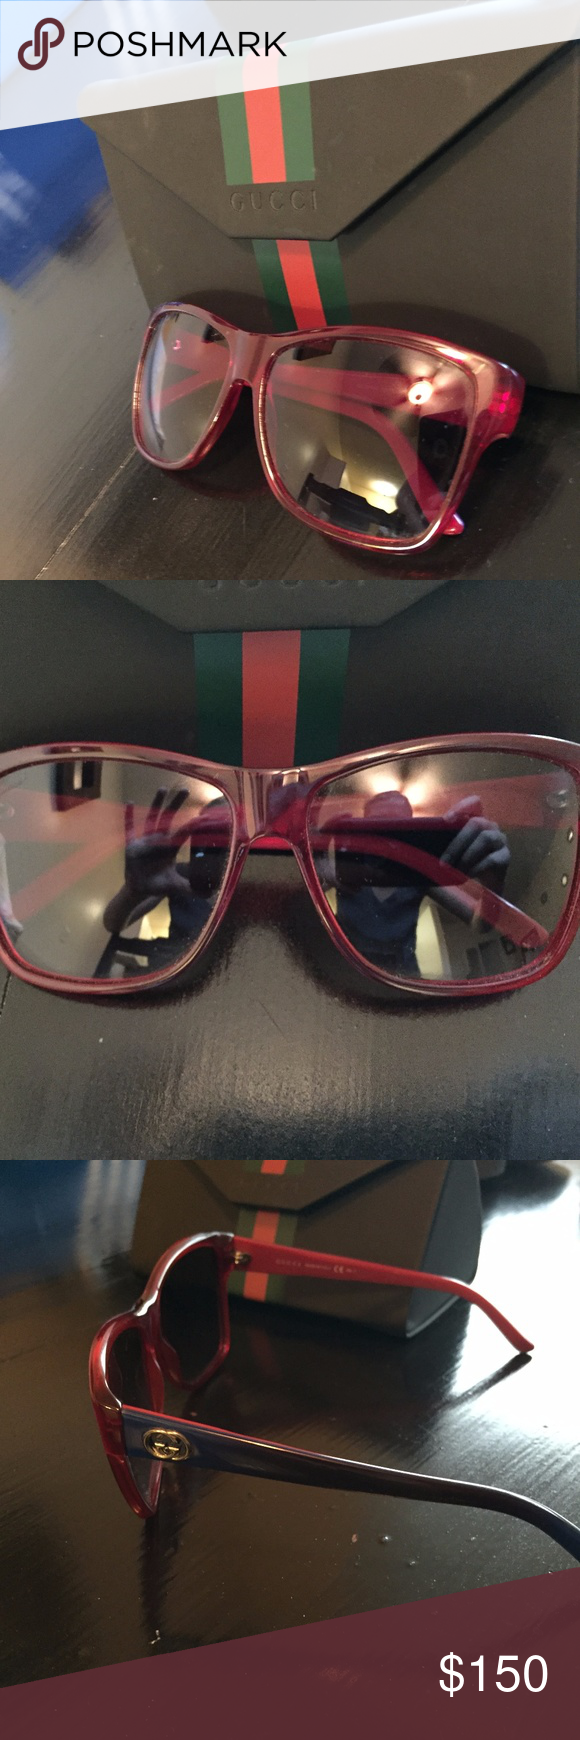 6f656097125c9 Gucci Sunglasses GG 3579 S Transparent Red Blue Gently used Gucci Shades!  Cool Red Blue color scheme Gucci Accessories Sunglasses